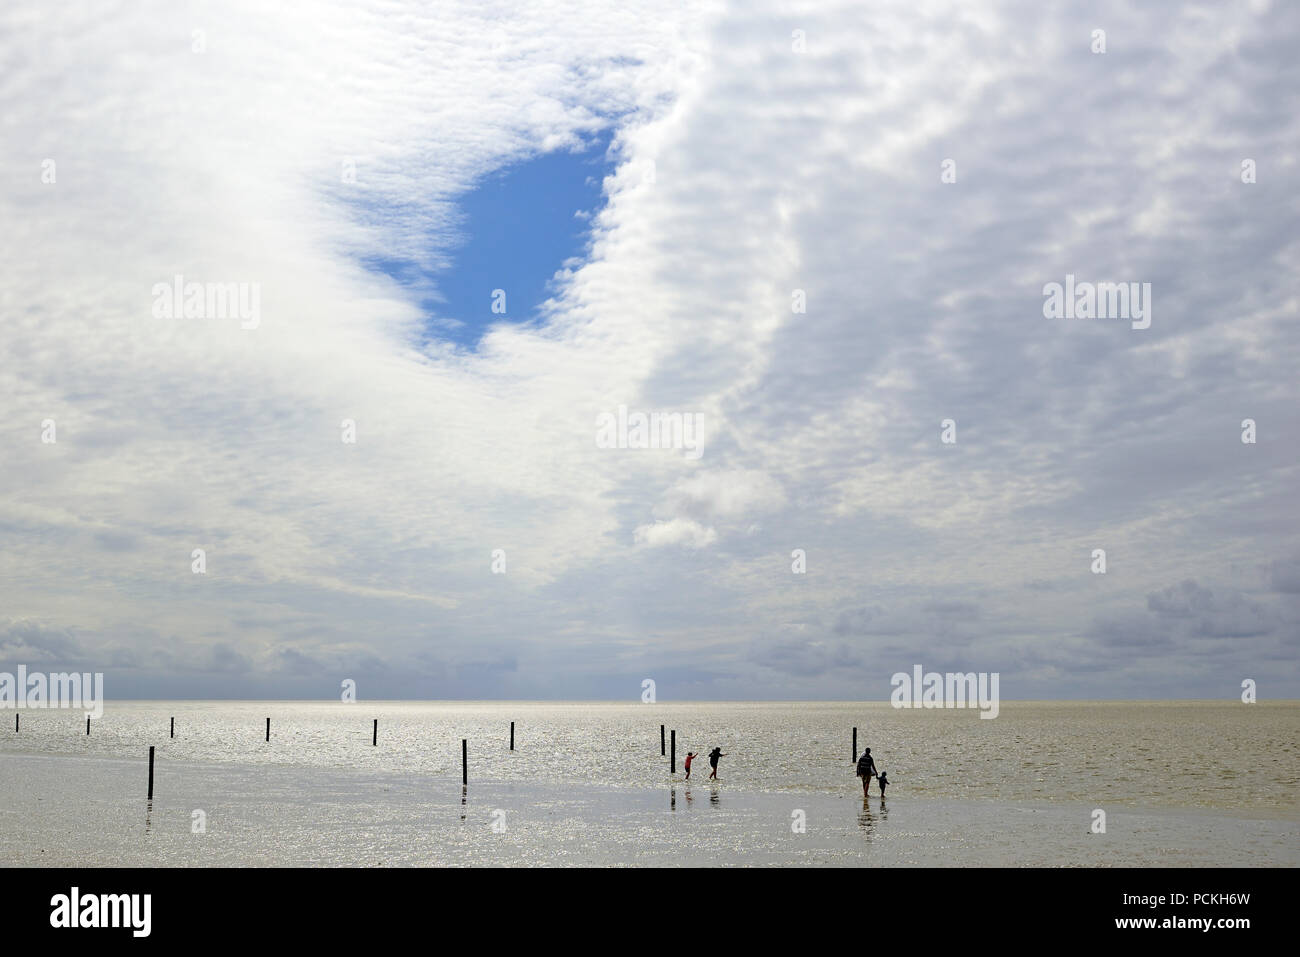 Persons in intertidal zone at rising Water, Norddeich, North Sea, Lower Saxony, Germany Stock Photo